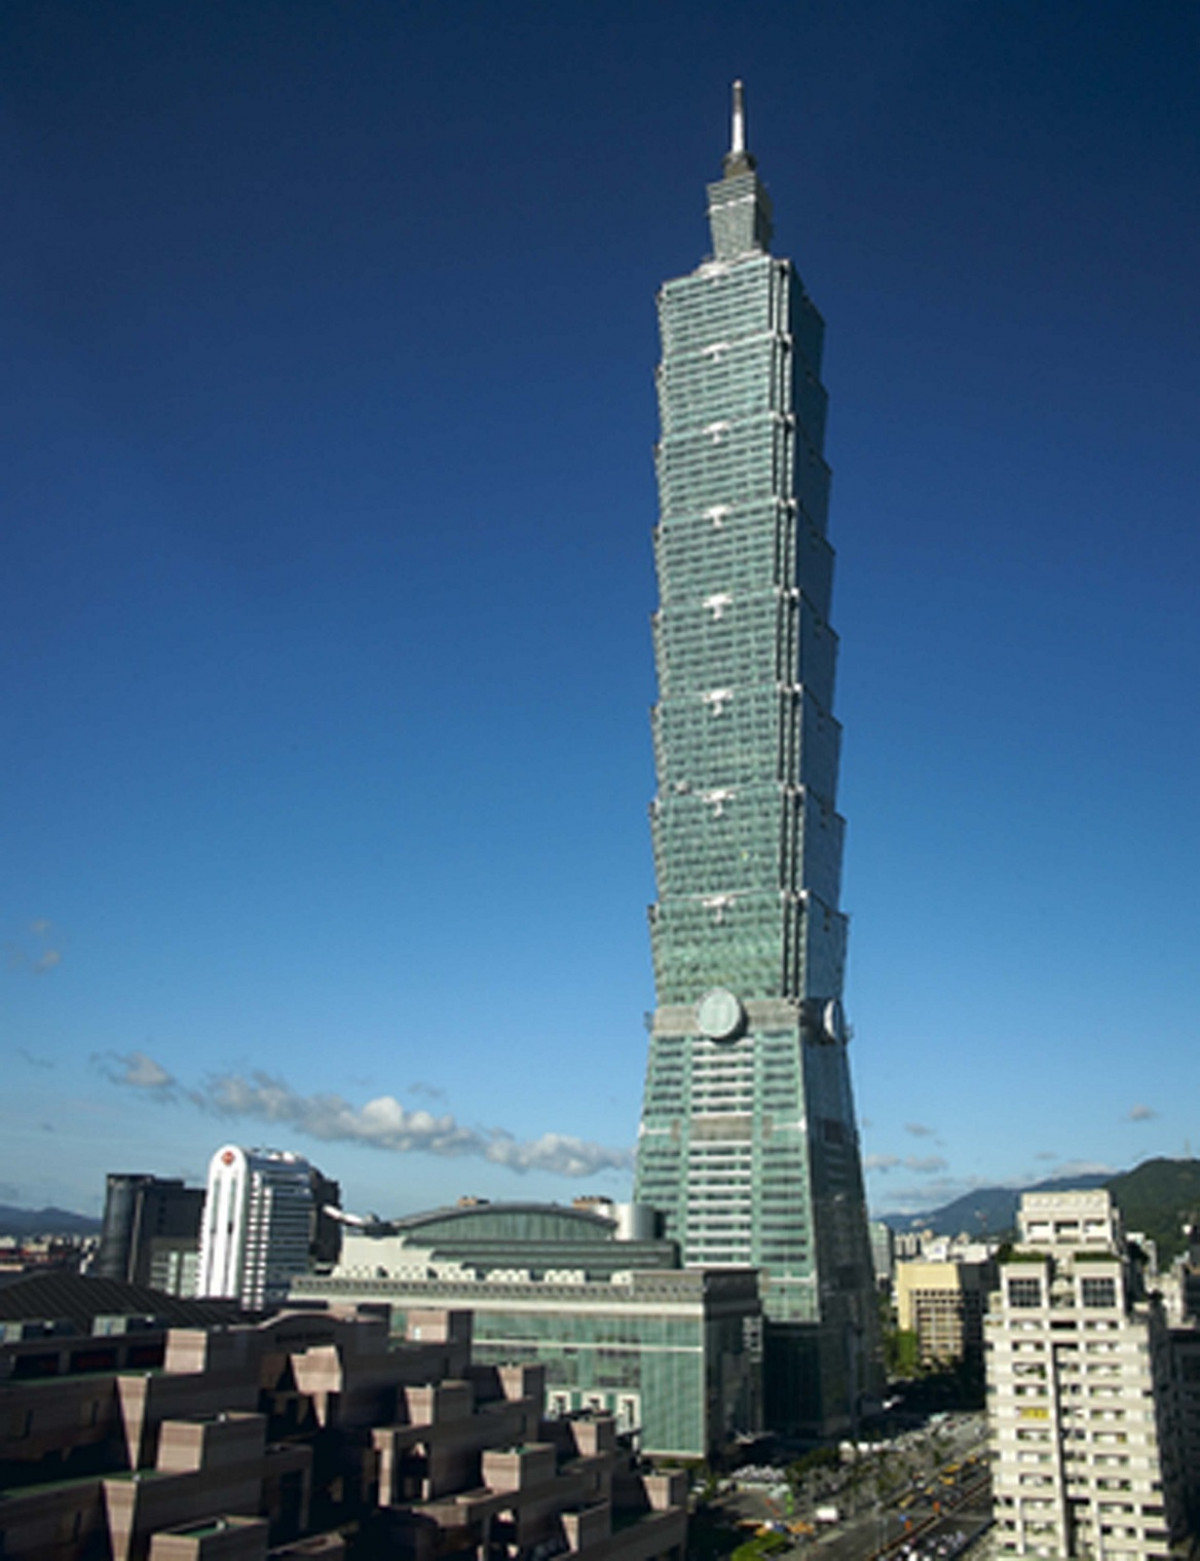 Taipei serviced offices